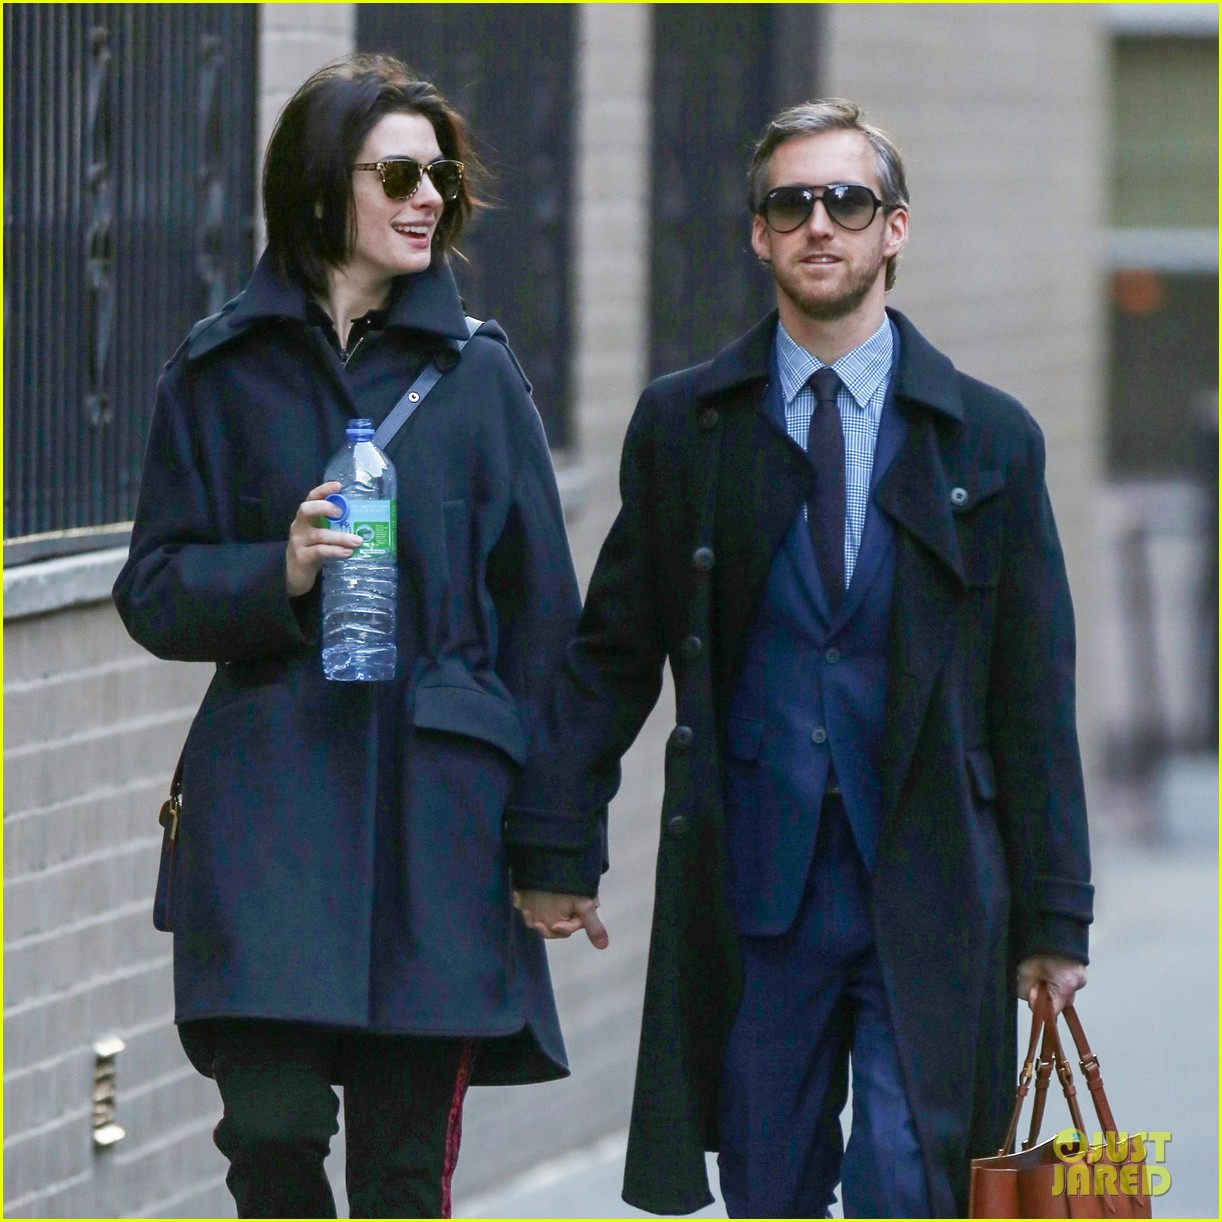 Anne Hathaway's Show 'Grounded' Gets Support From Hugh